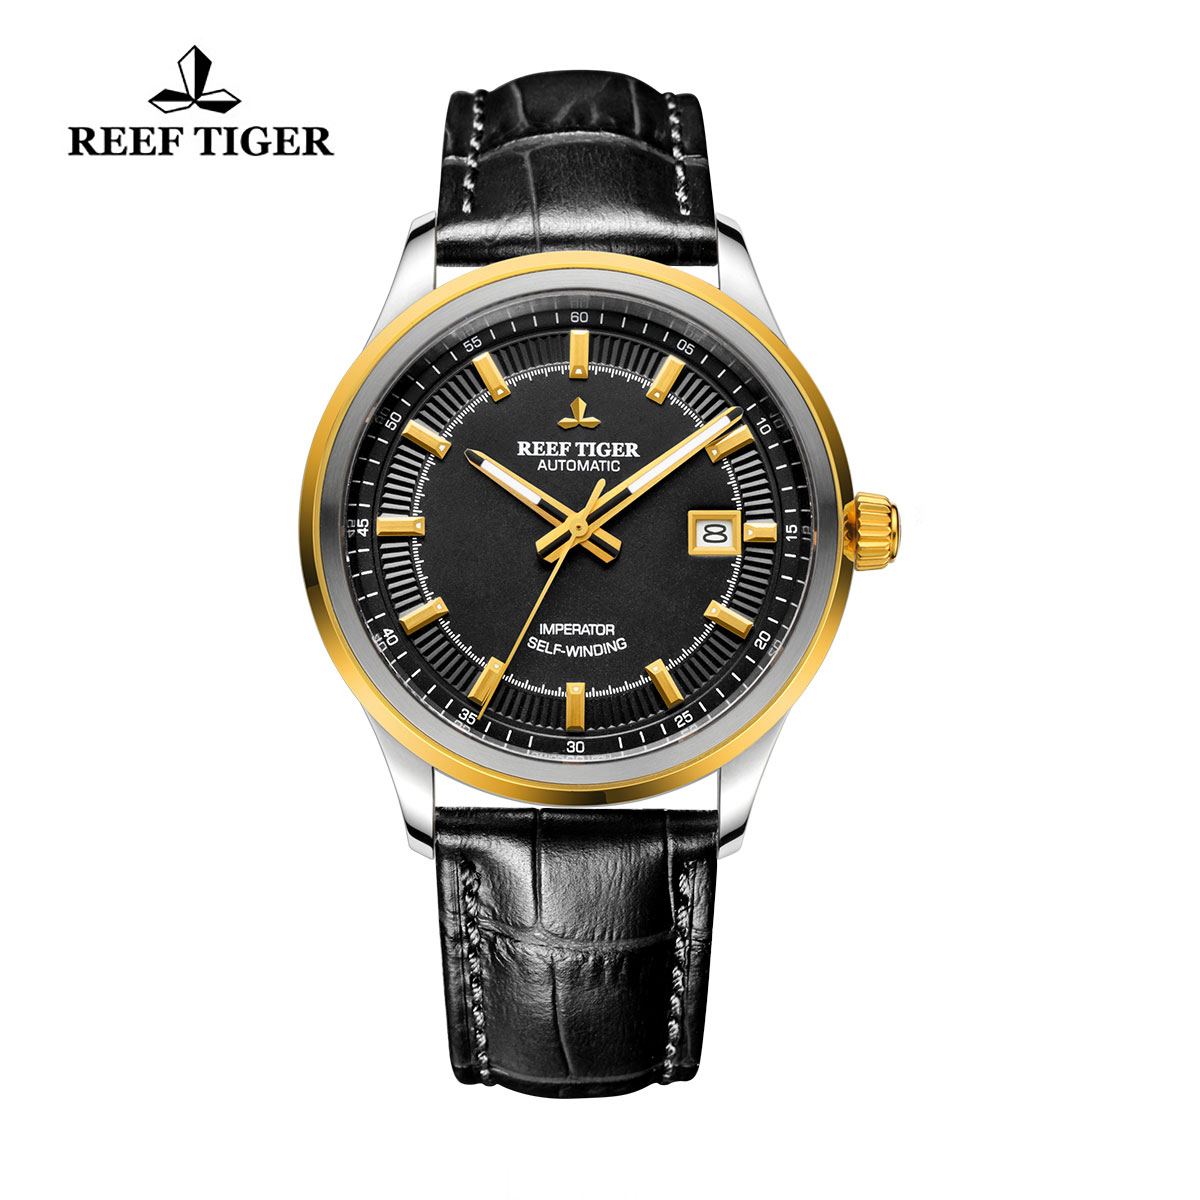 Reef Tiger Imperator Business Watch Automatic Black Dial Calfskin Leather RGA8015-GBB